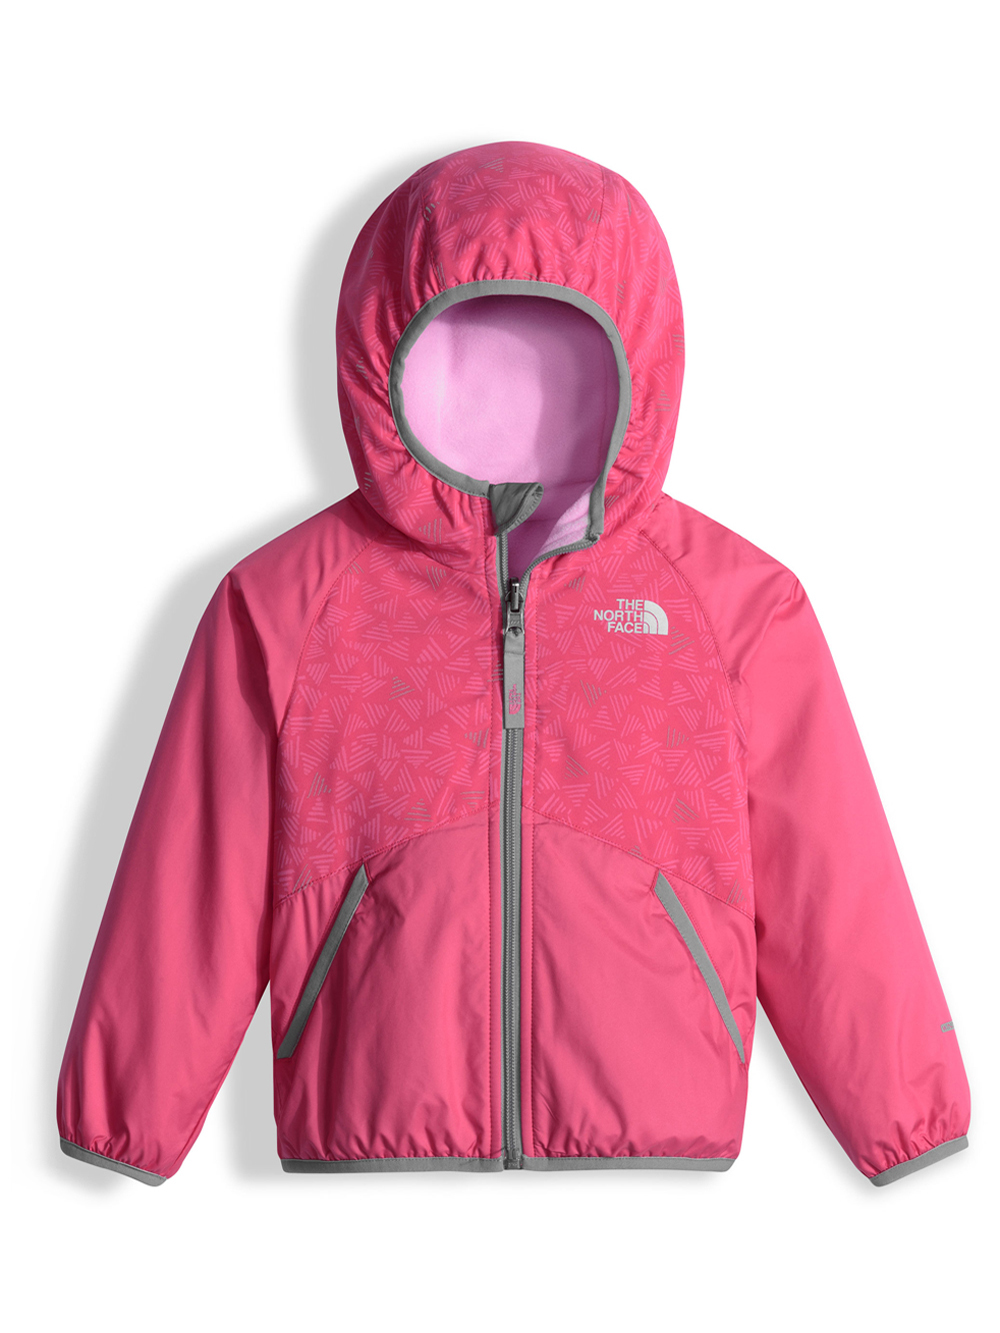 The North Face Little Girls' Toddler Reversible Breezeway Wind Jacket (Sizes 2T - 4T)